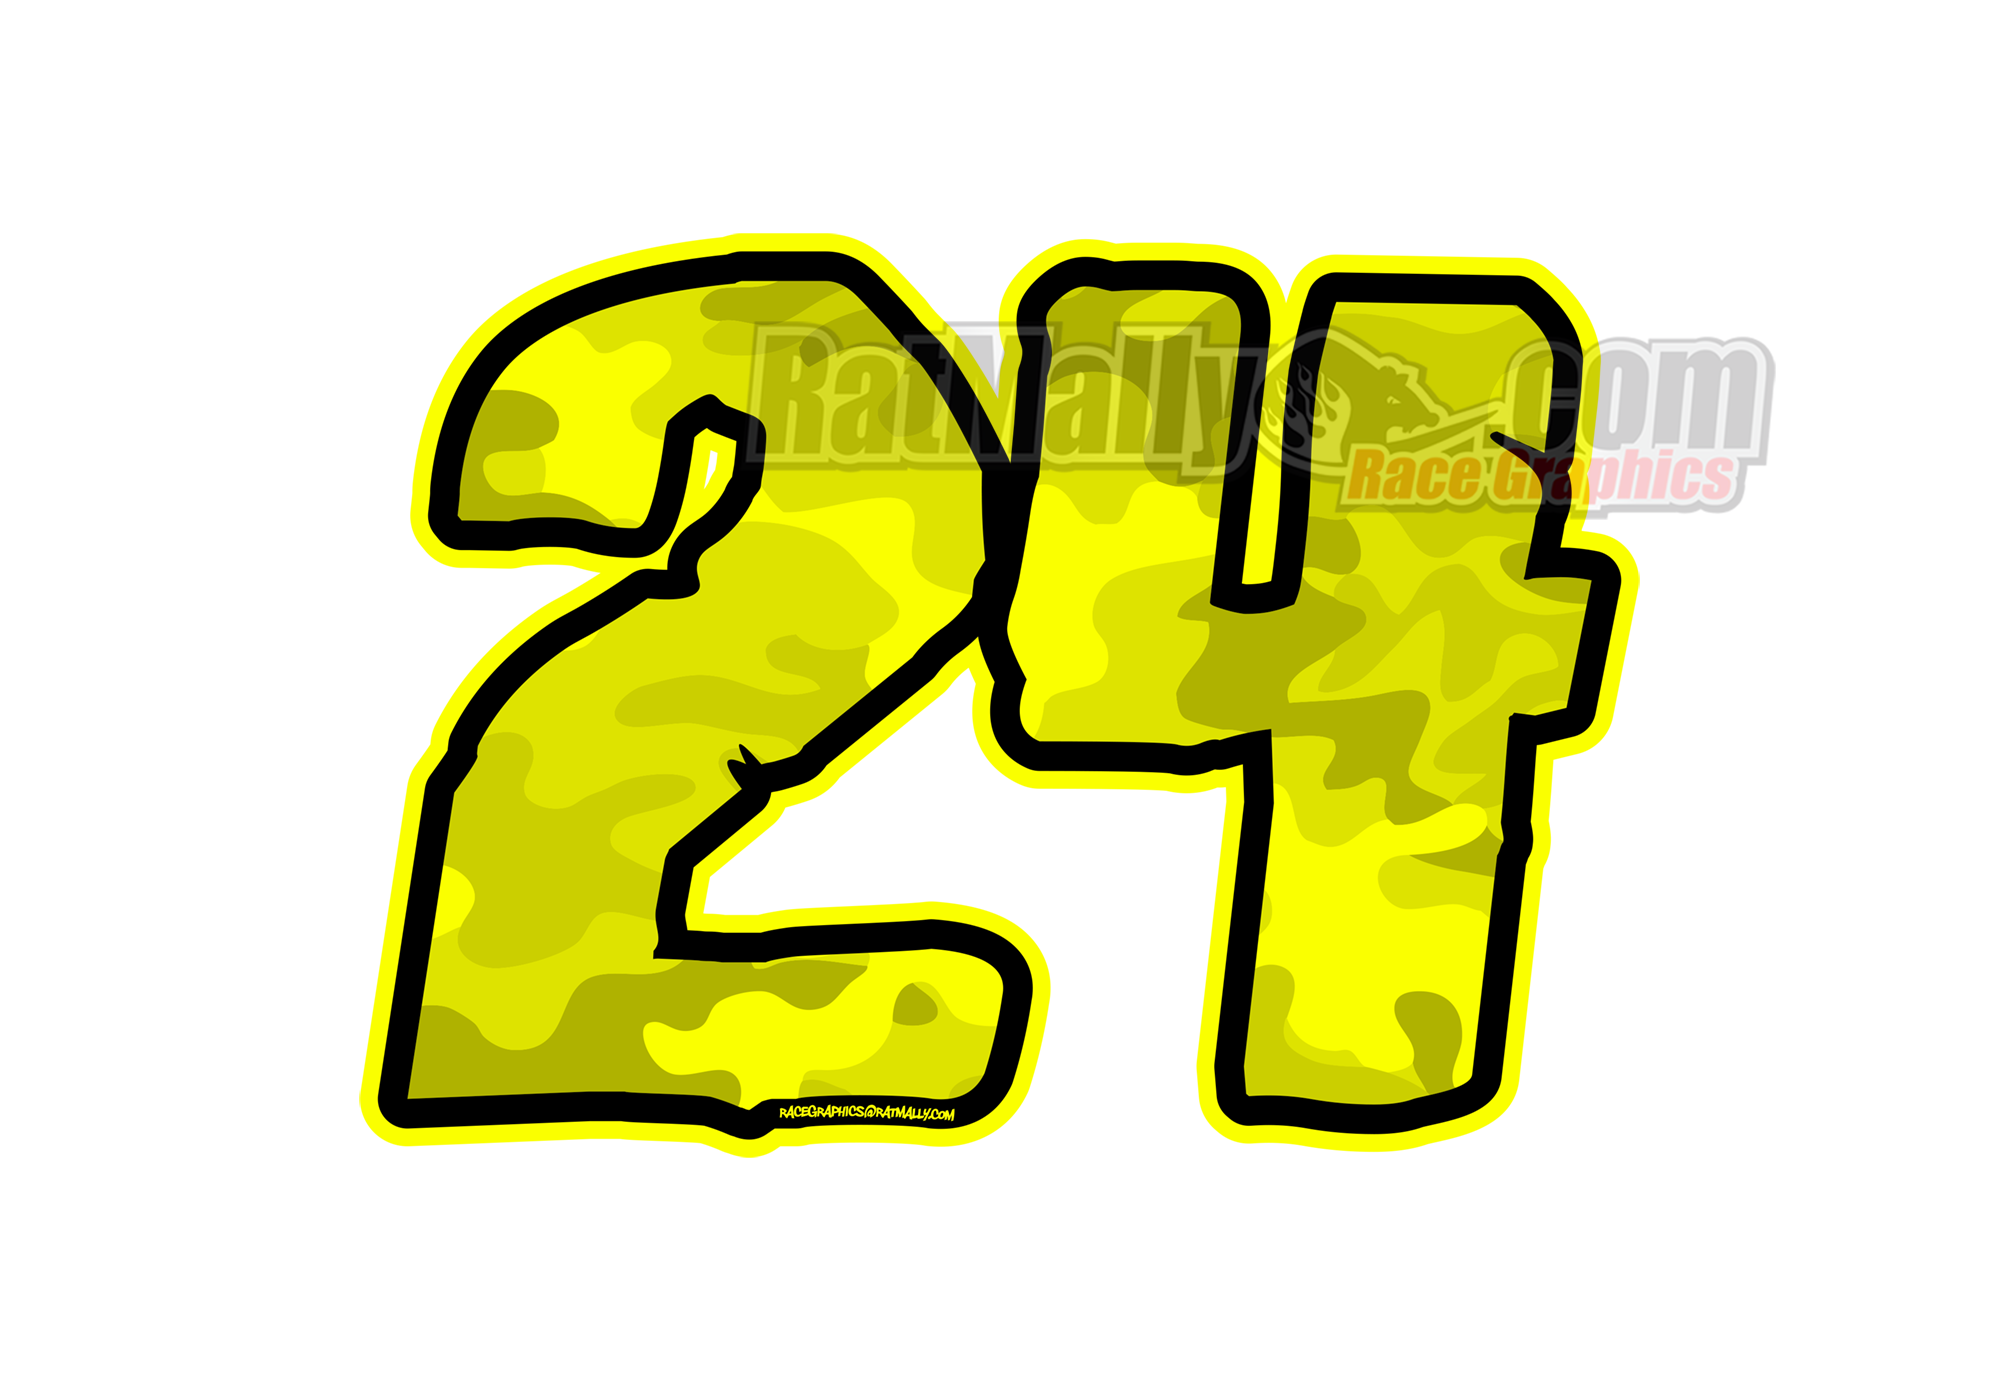 Race numbers png. Camo flo edition ratmally